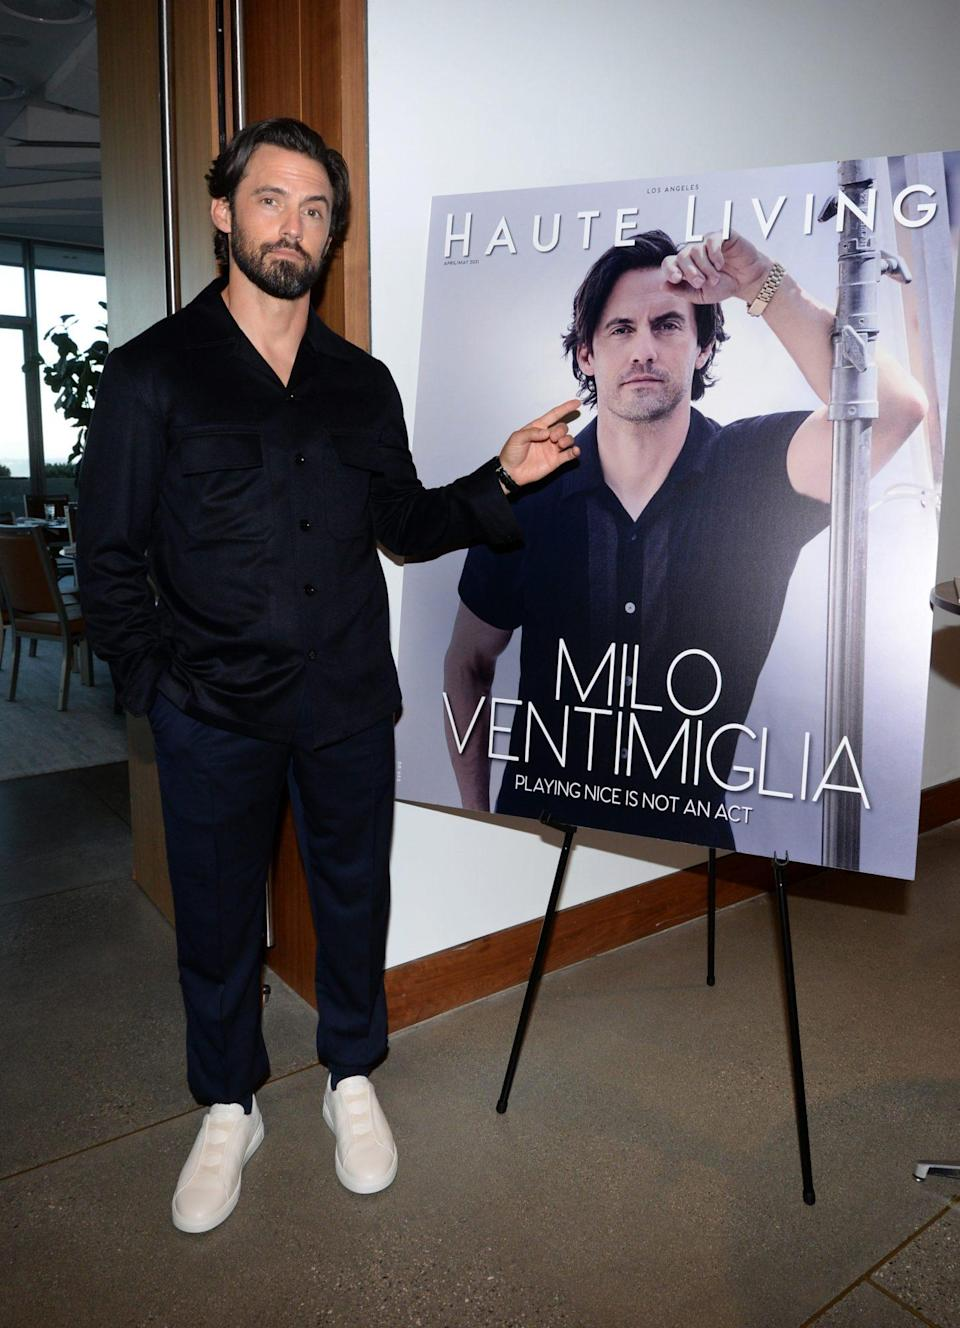 <p>Milo Ventimiglia attends <em>Haute Living</em> Celebrates Milo Ventimiglia at the 1 Hotel West Hollywood on July 28 in West Hollywood.</p>